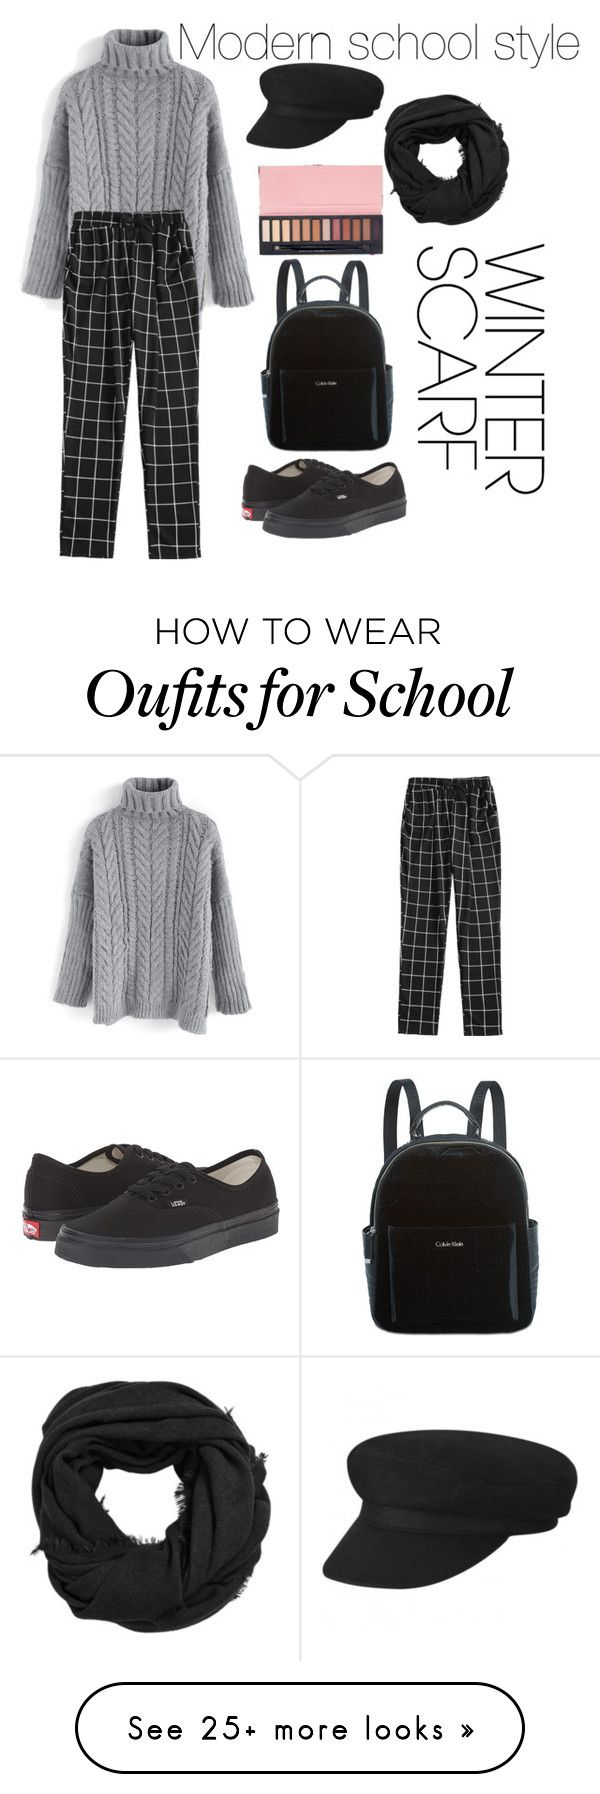 """Modern school style and winter scarf"" by cocomademoisellenumber5 on Polyvore featuring Chicwish, Vans, Calvin Klein, MANGO and modern"